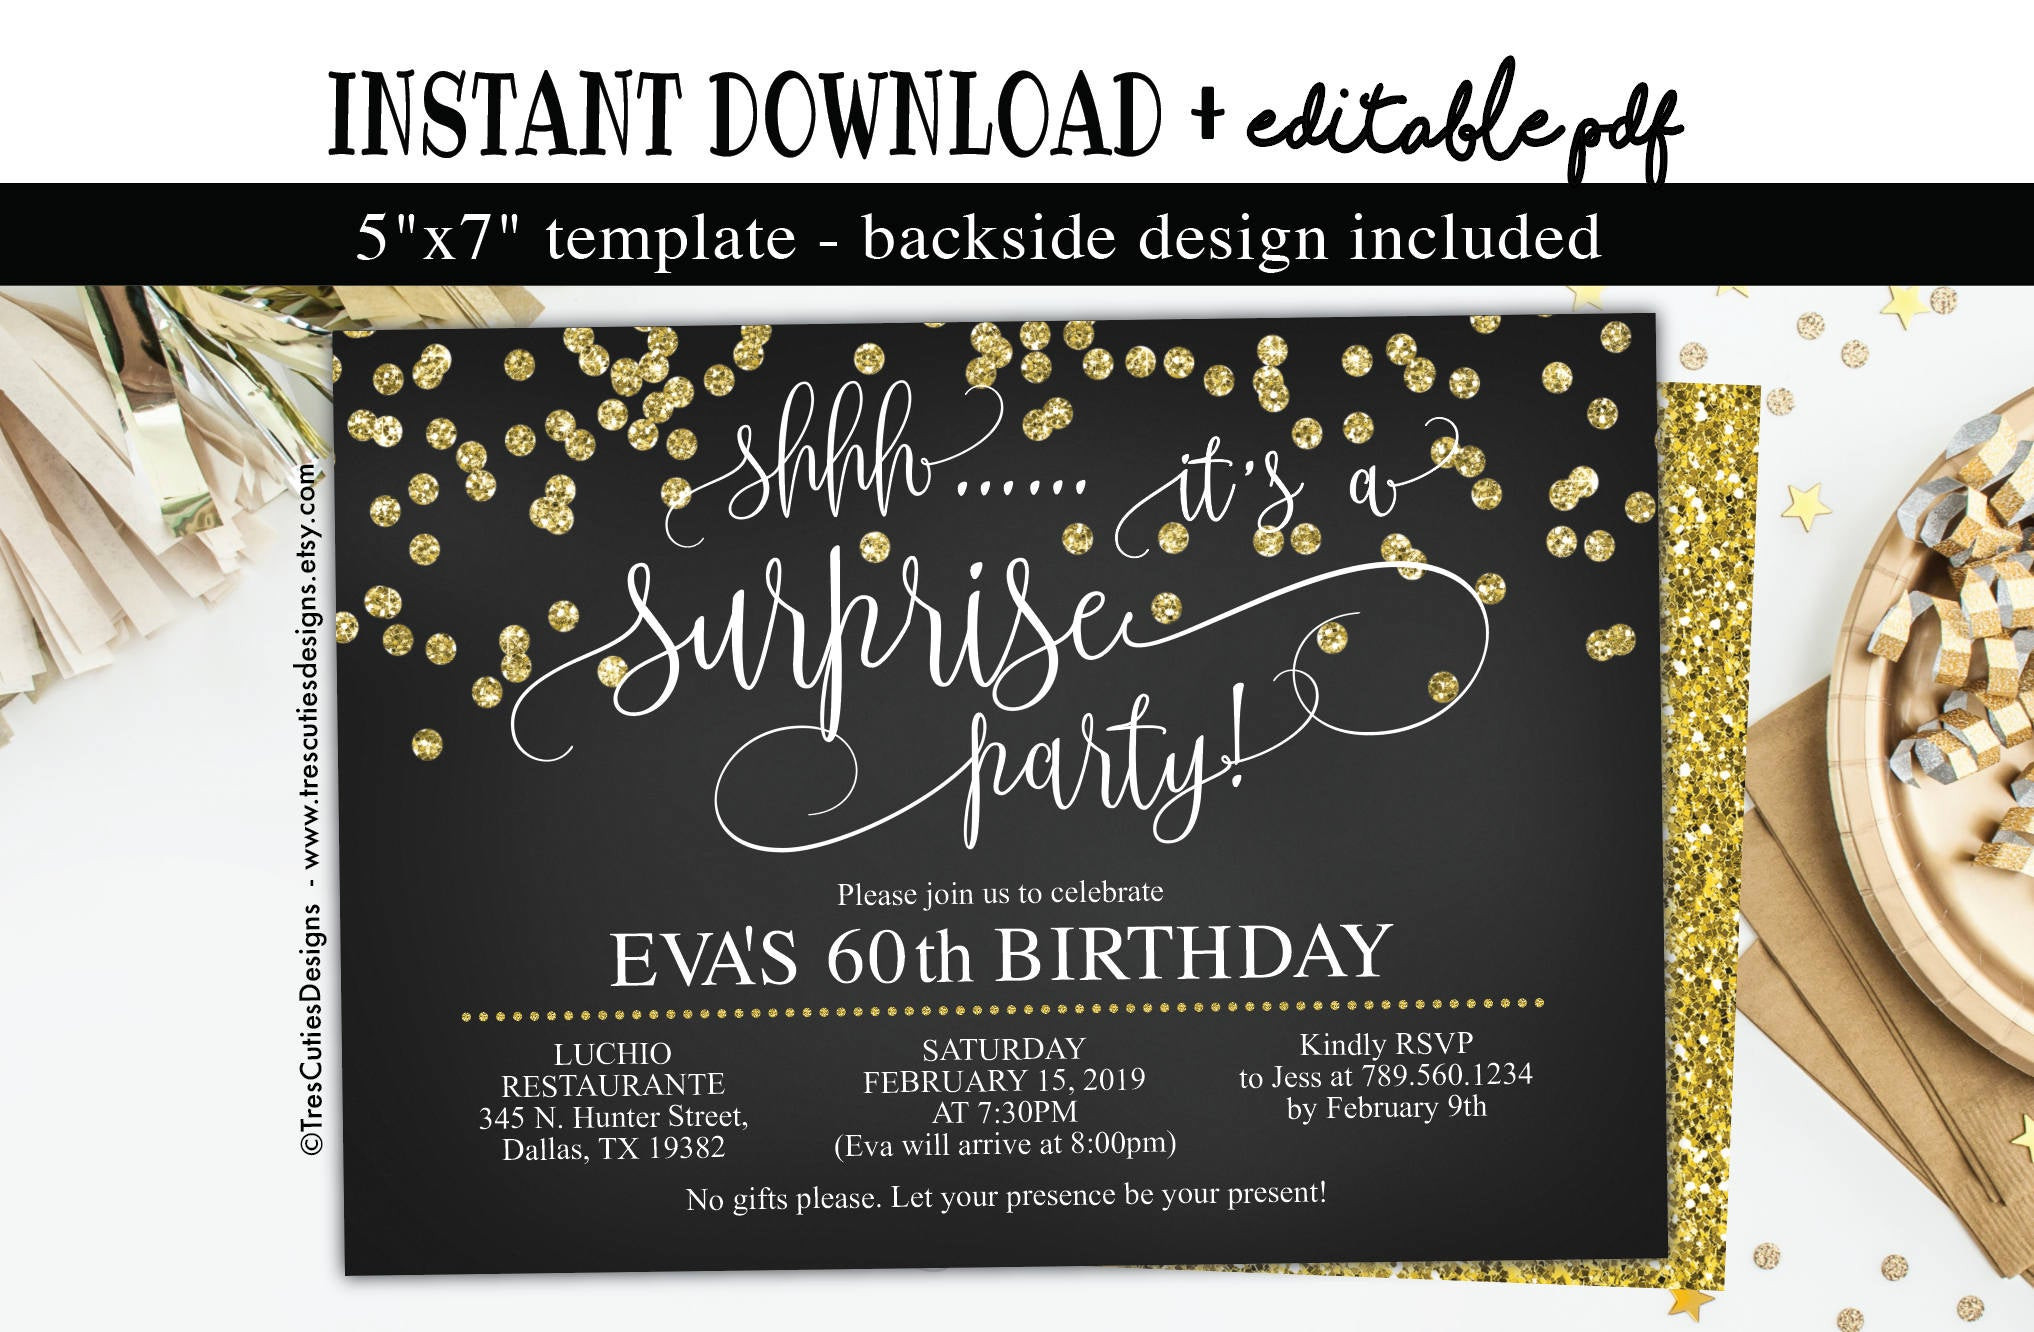 Best ideas about Surprise 60th Birthday Invitations . Save or Pin Surprise birthday invitation 60th birthday Party Black Now.